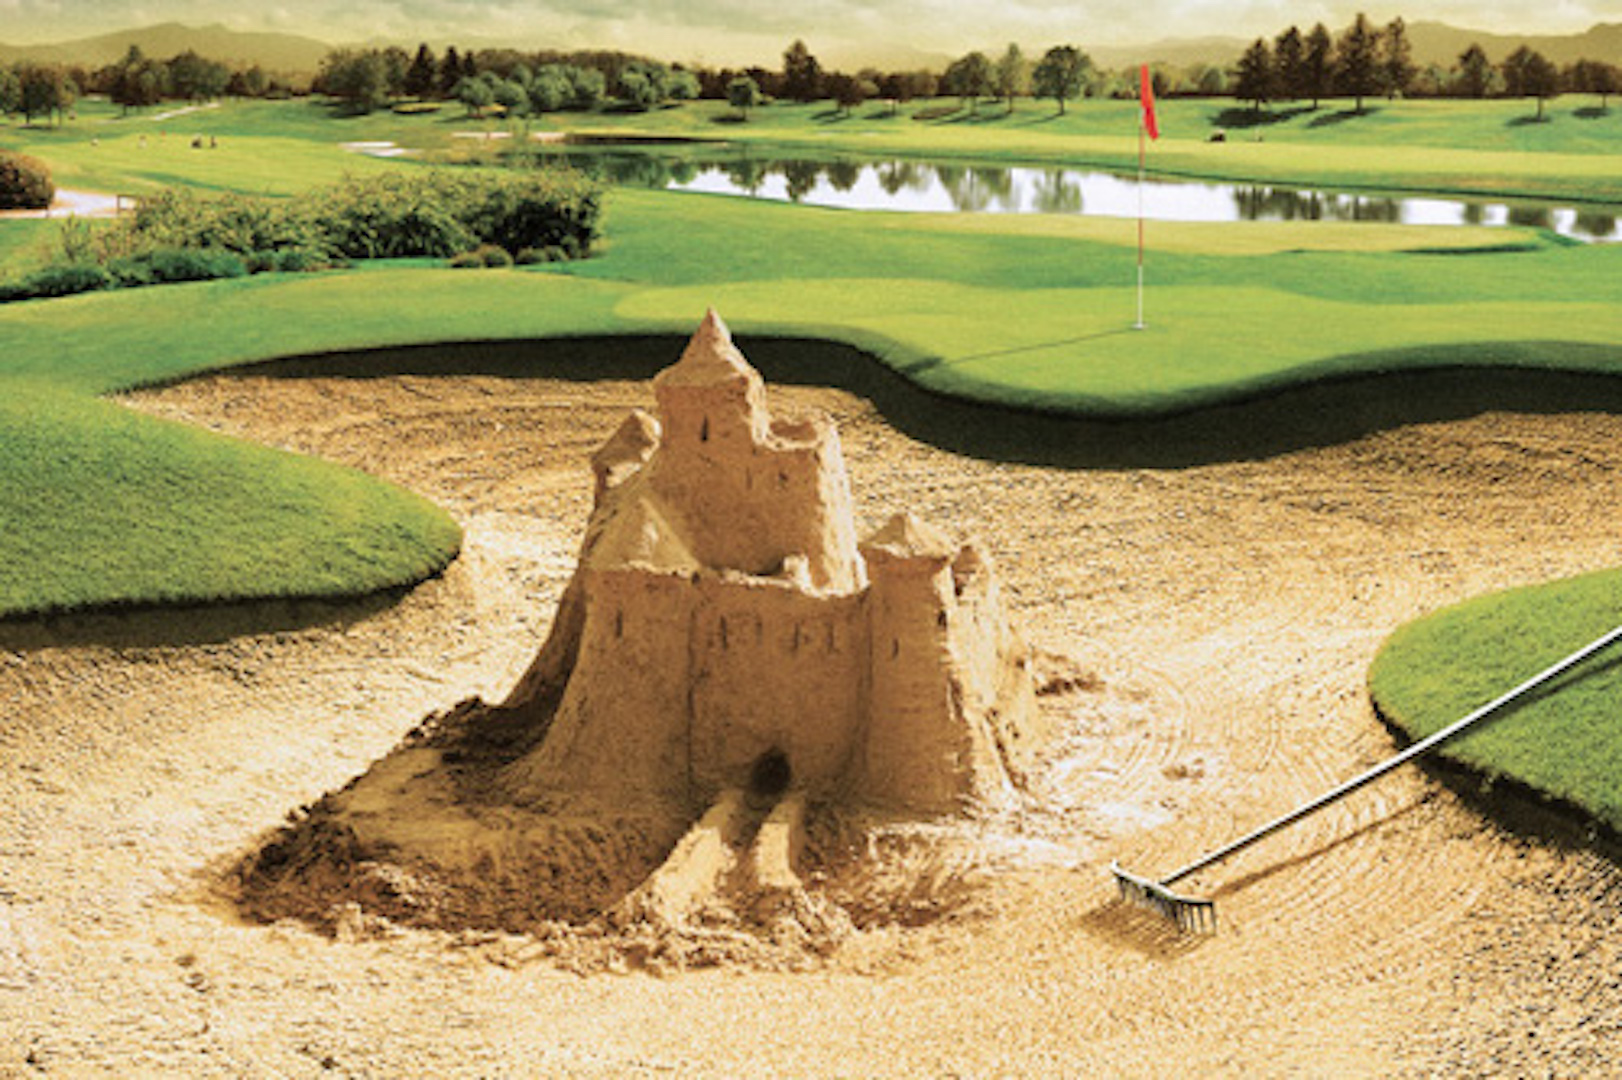 Sandcastles in your bunkers